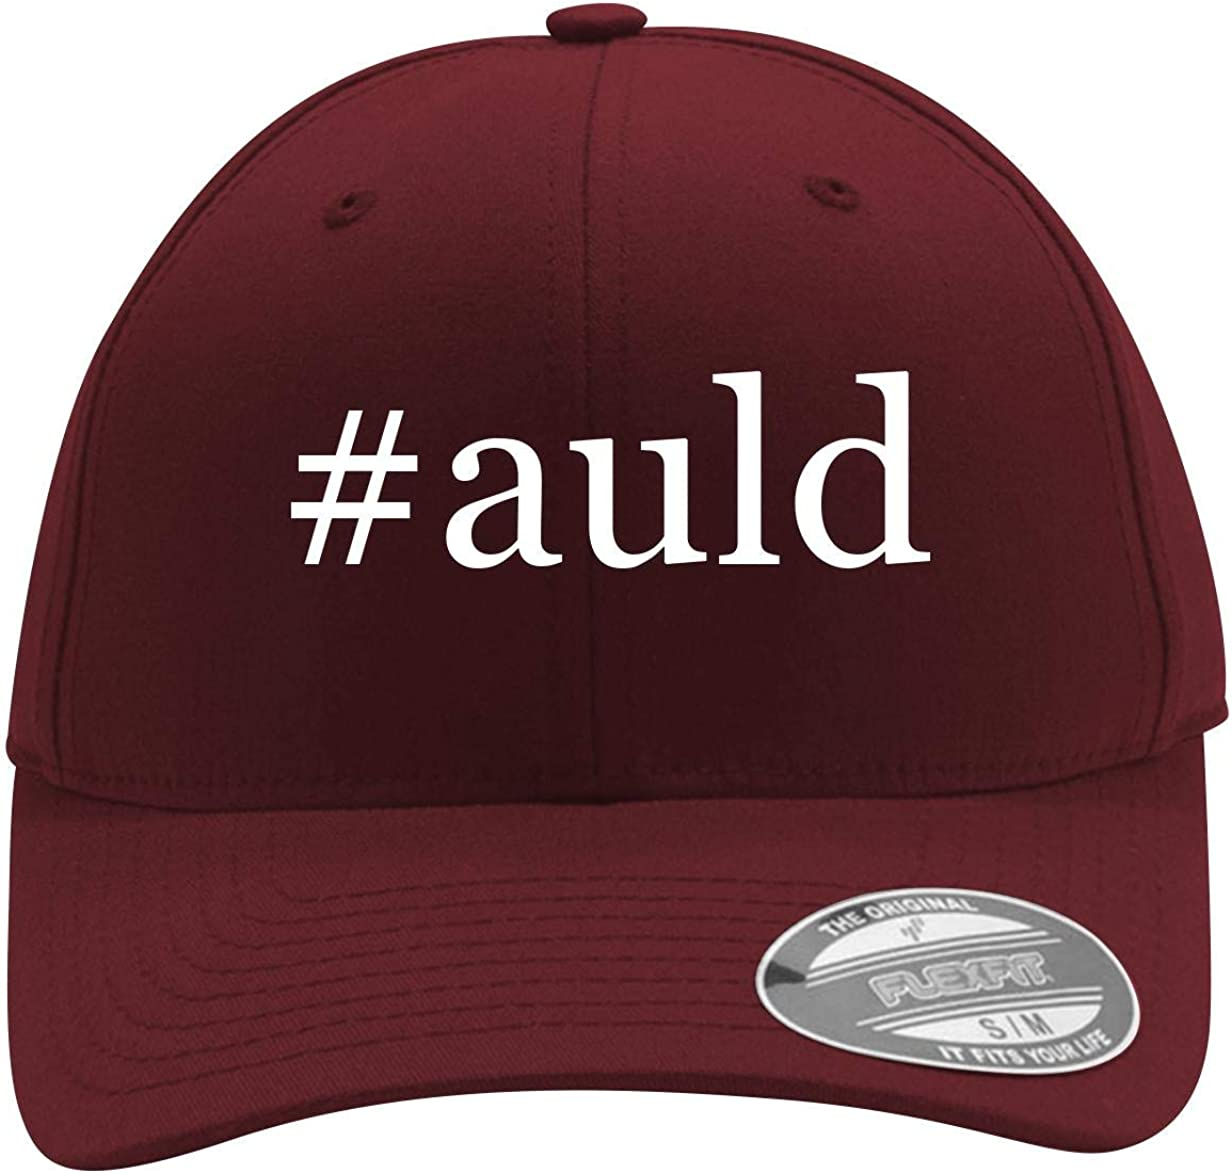 #Auld - Men's Hashtag Flexfit Baseball Cap Hat